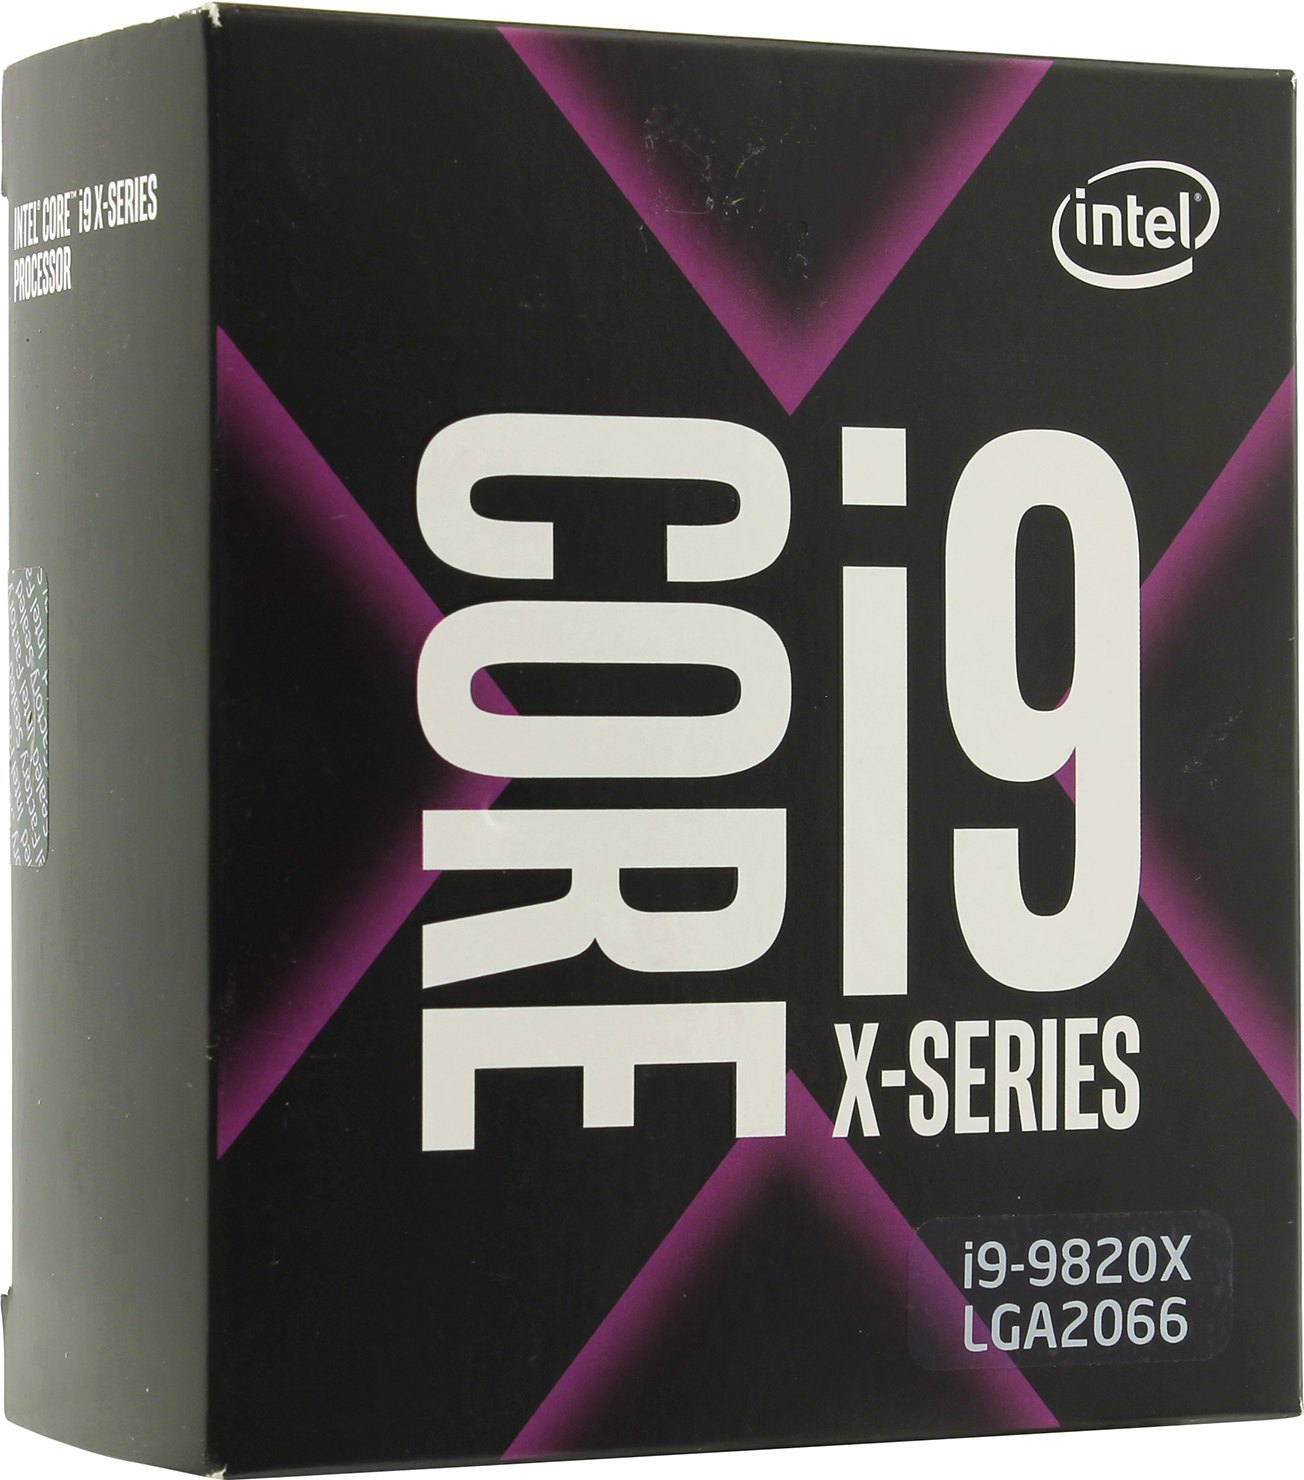 Фото - Процессор Intel Core i9-9820X Box (BX80673I99820X S REZ8) видео